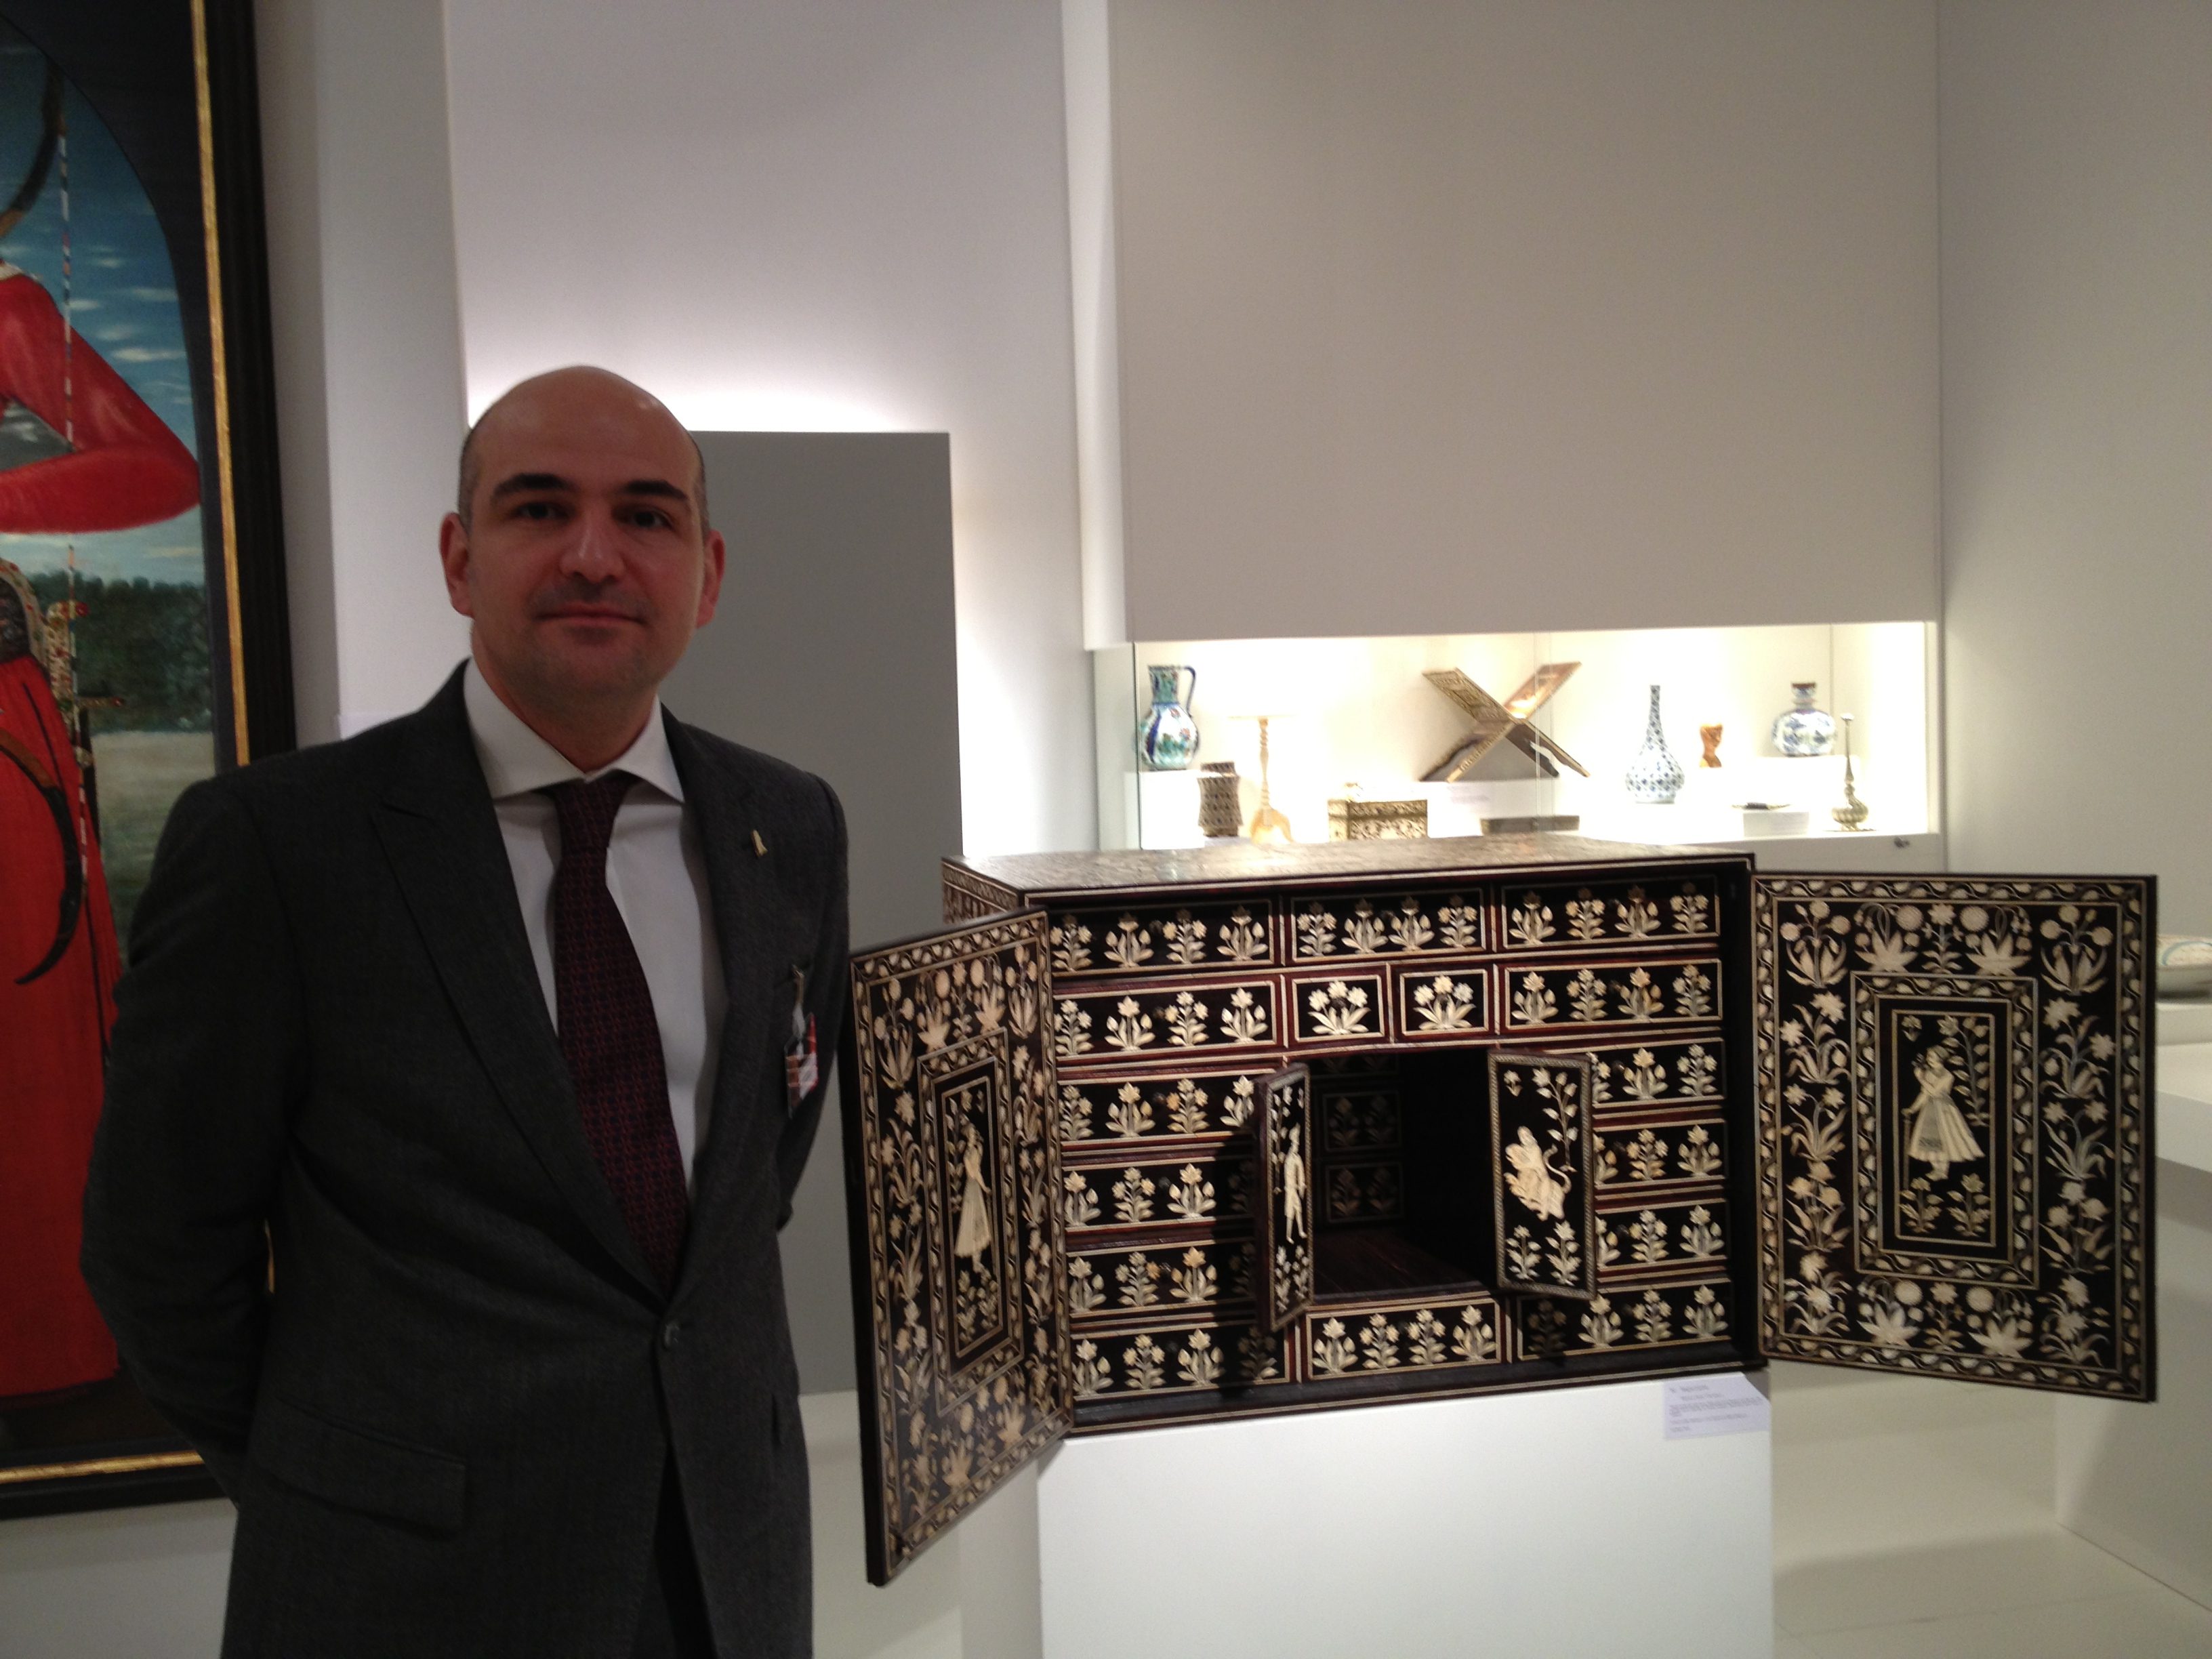 Amir Mohtashemi, a London based Indian and Islamic art dealer, stands in his booth. Credit: Menachem Wecker